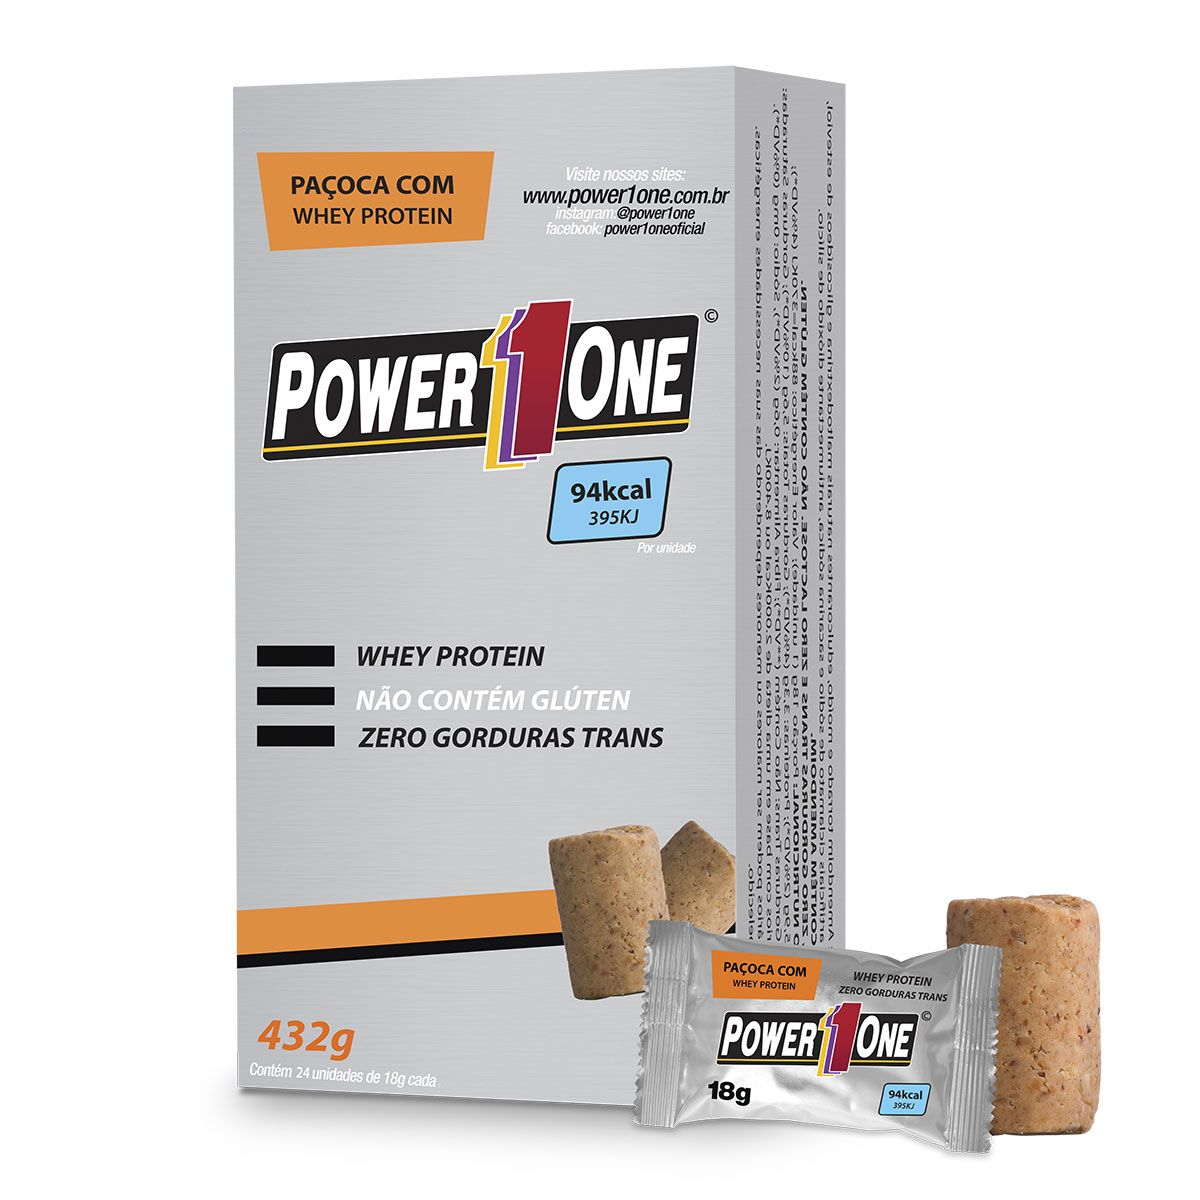 PAÇOCA C/ WHEY PROTEIN  UN - POWER ONE